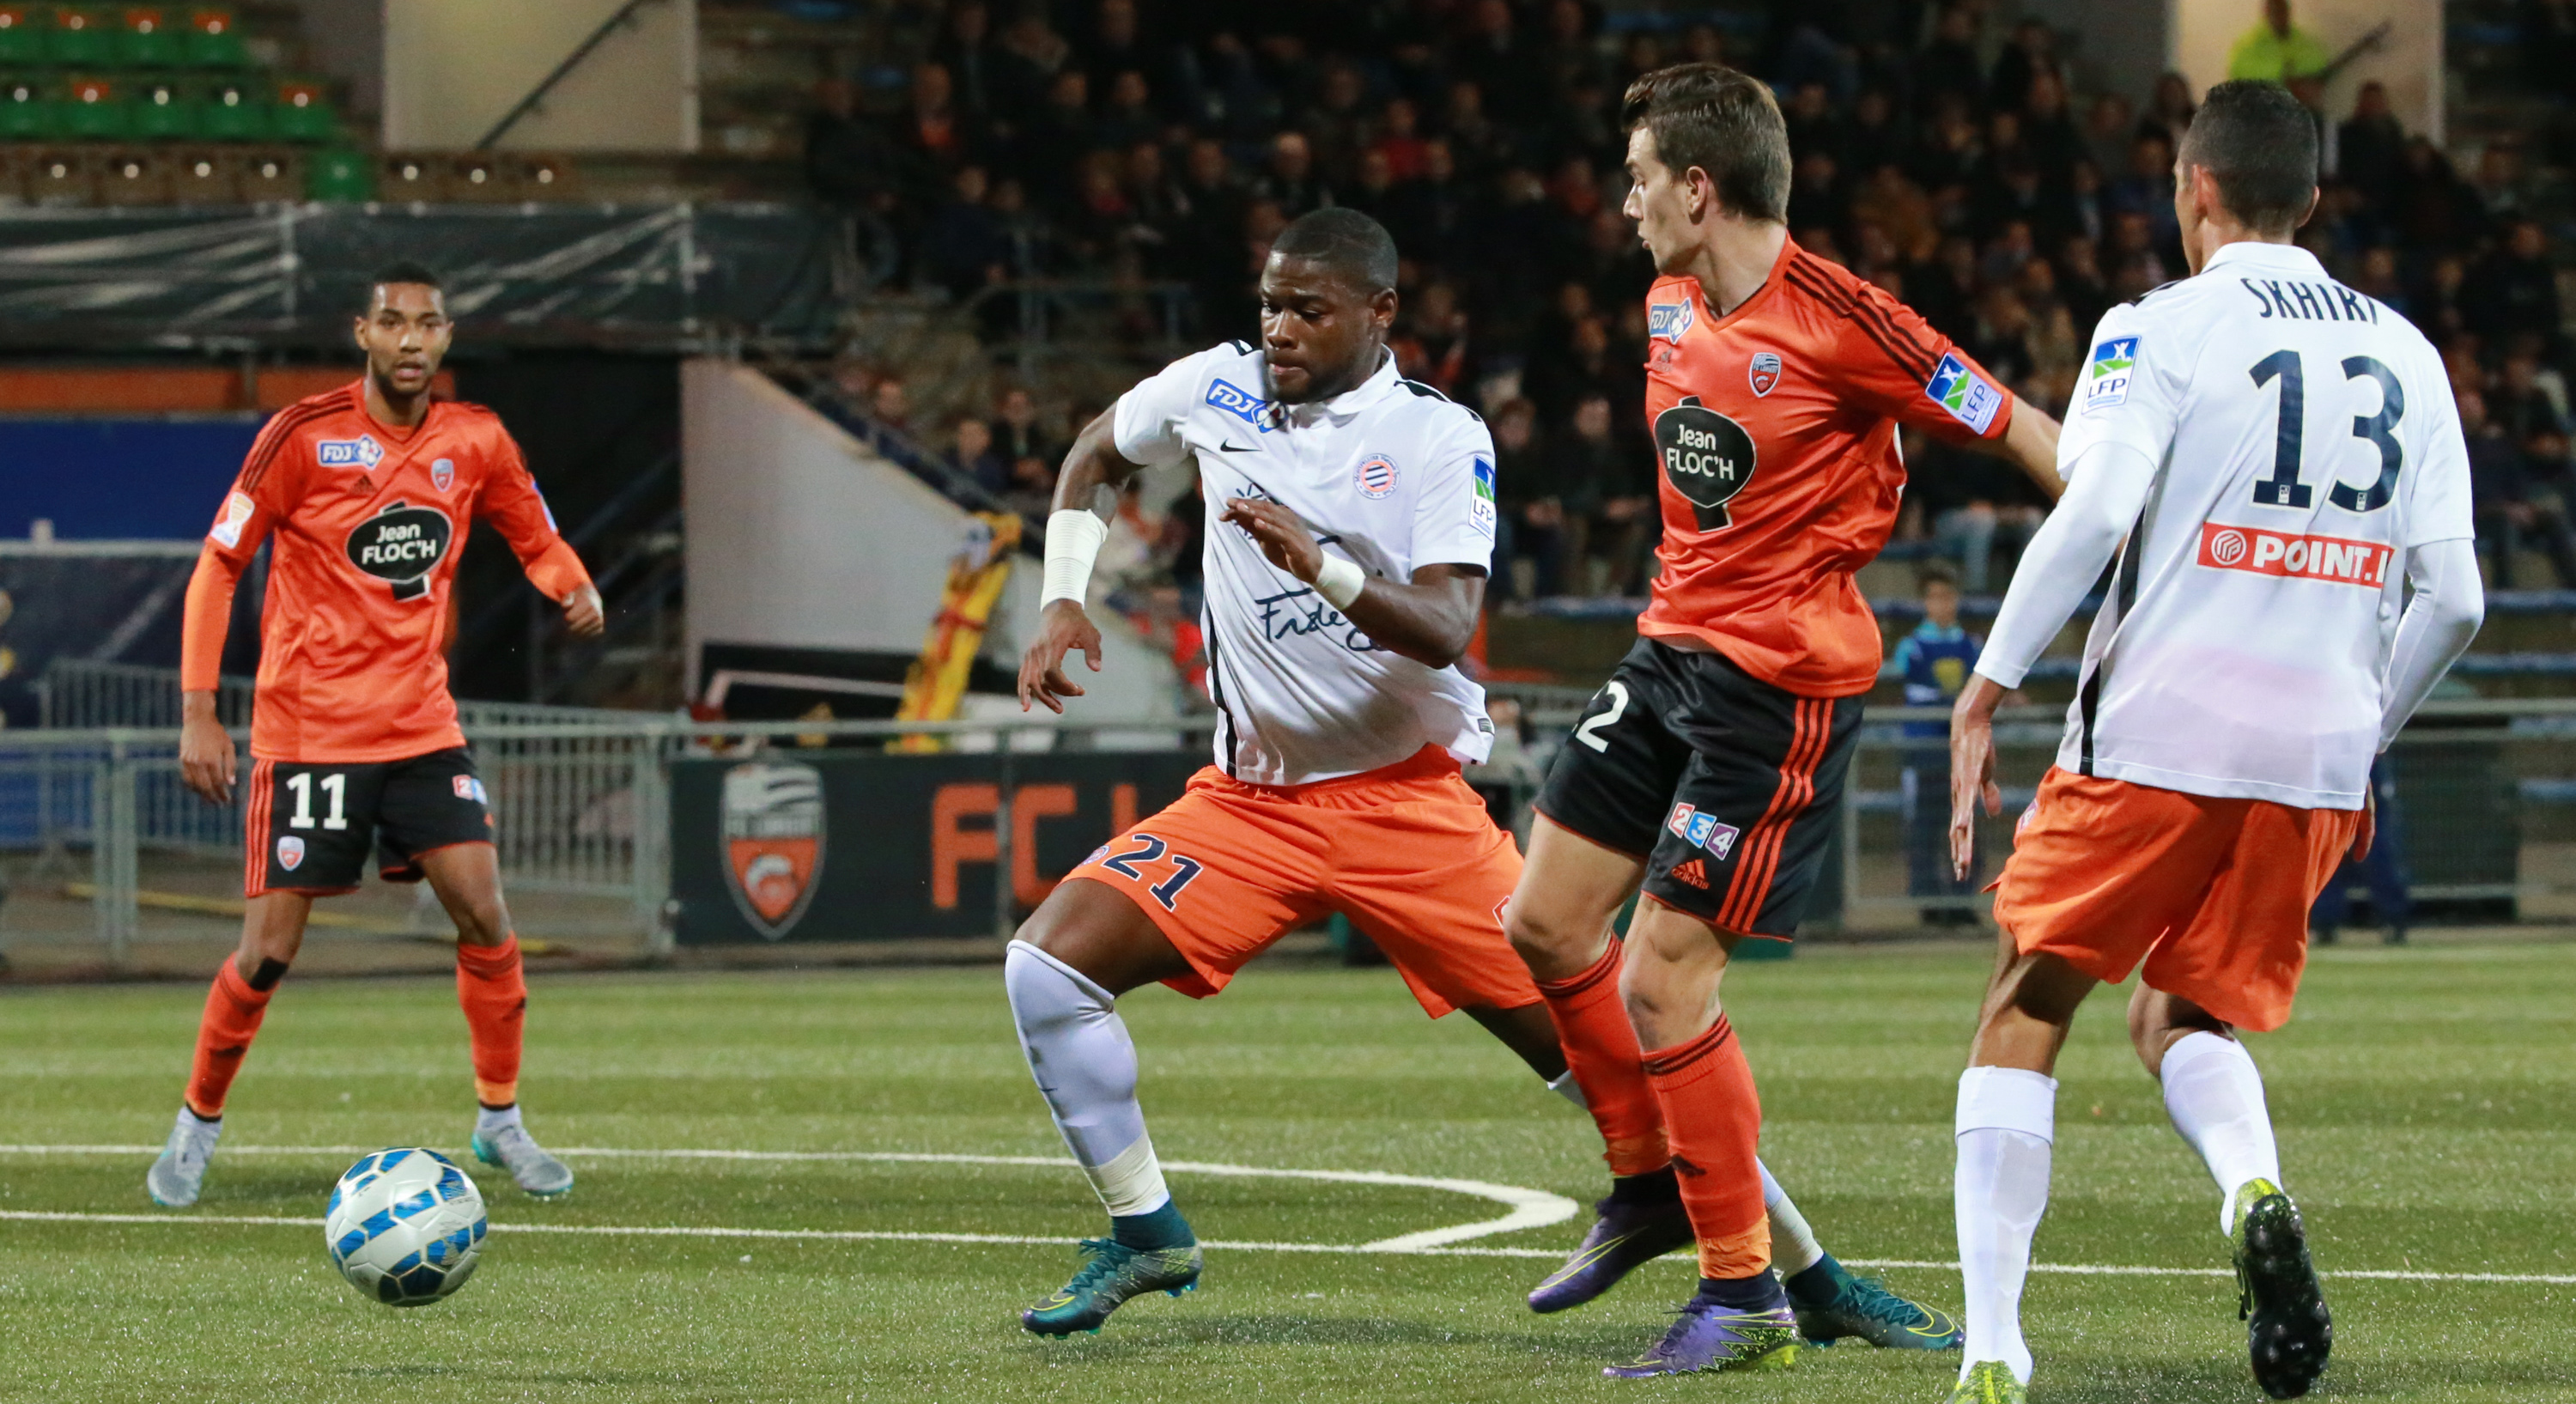 Coupe de la ligue fc lorient mhsc 3 2 mhsc foot billetterie montpellier h rault mhsc - Billetterie coupe de la ligue 2015 ...